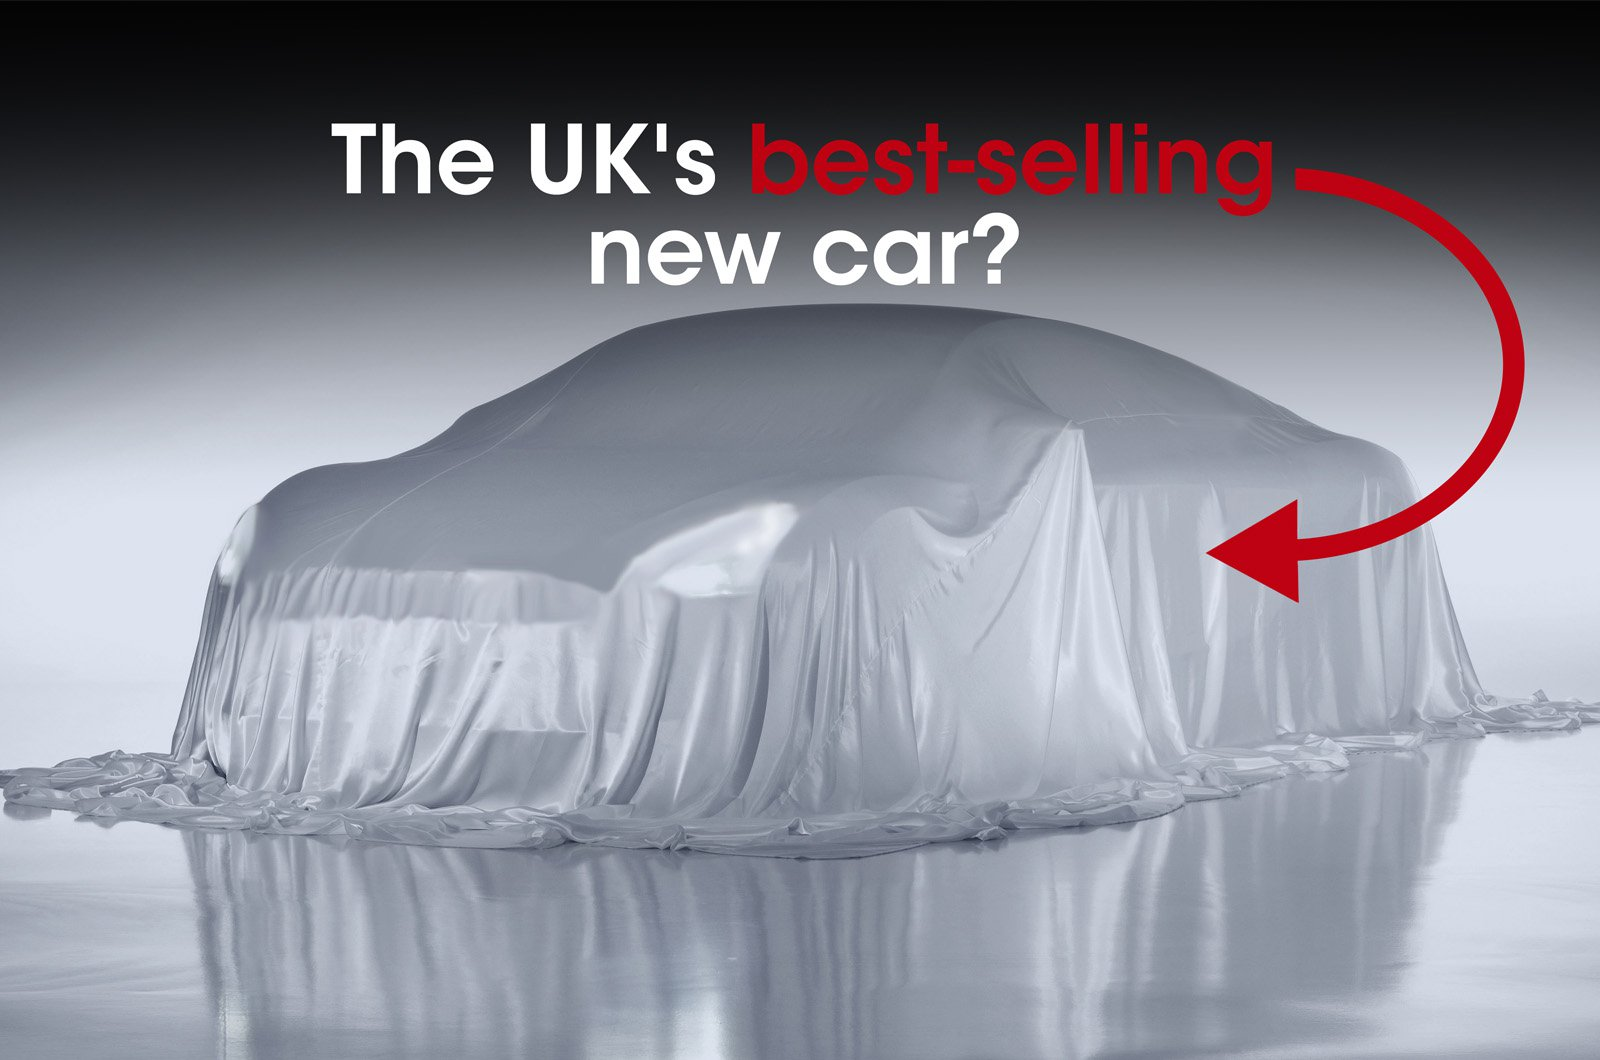 UK's best-selling new car